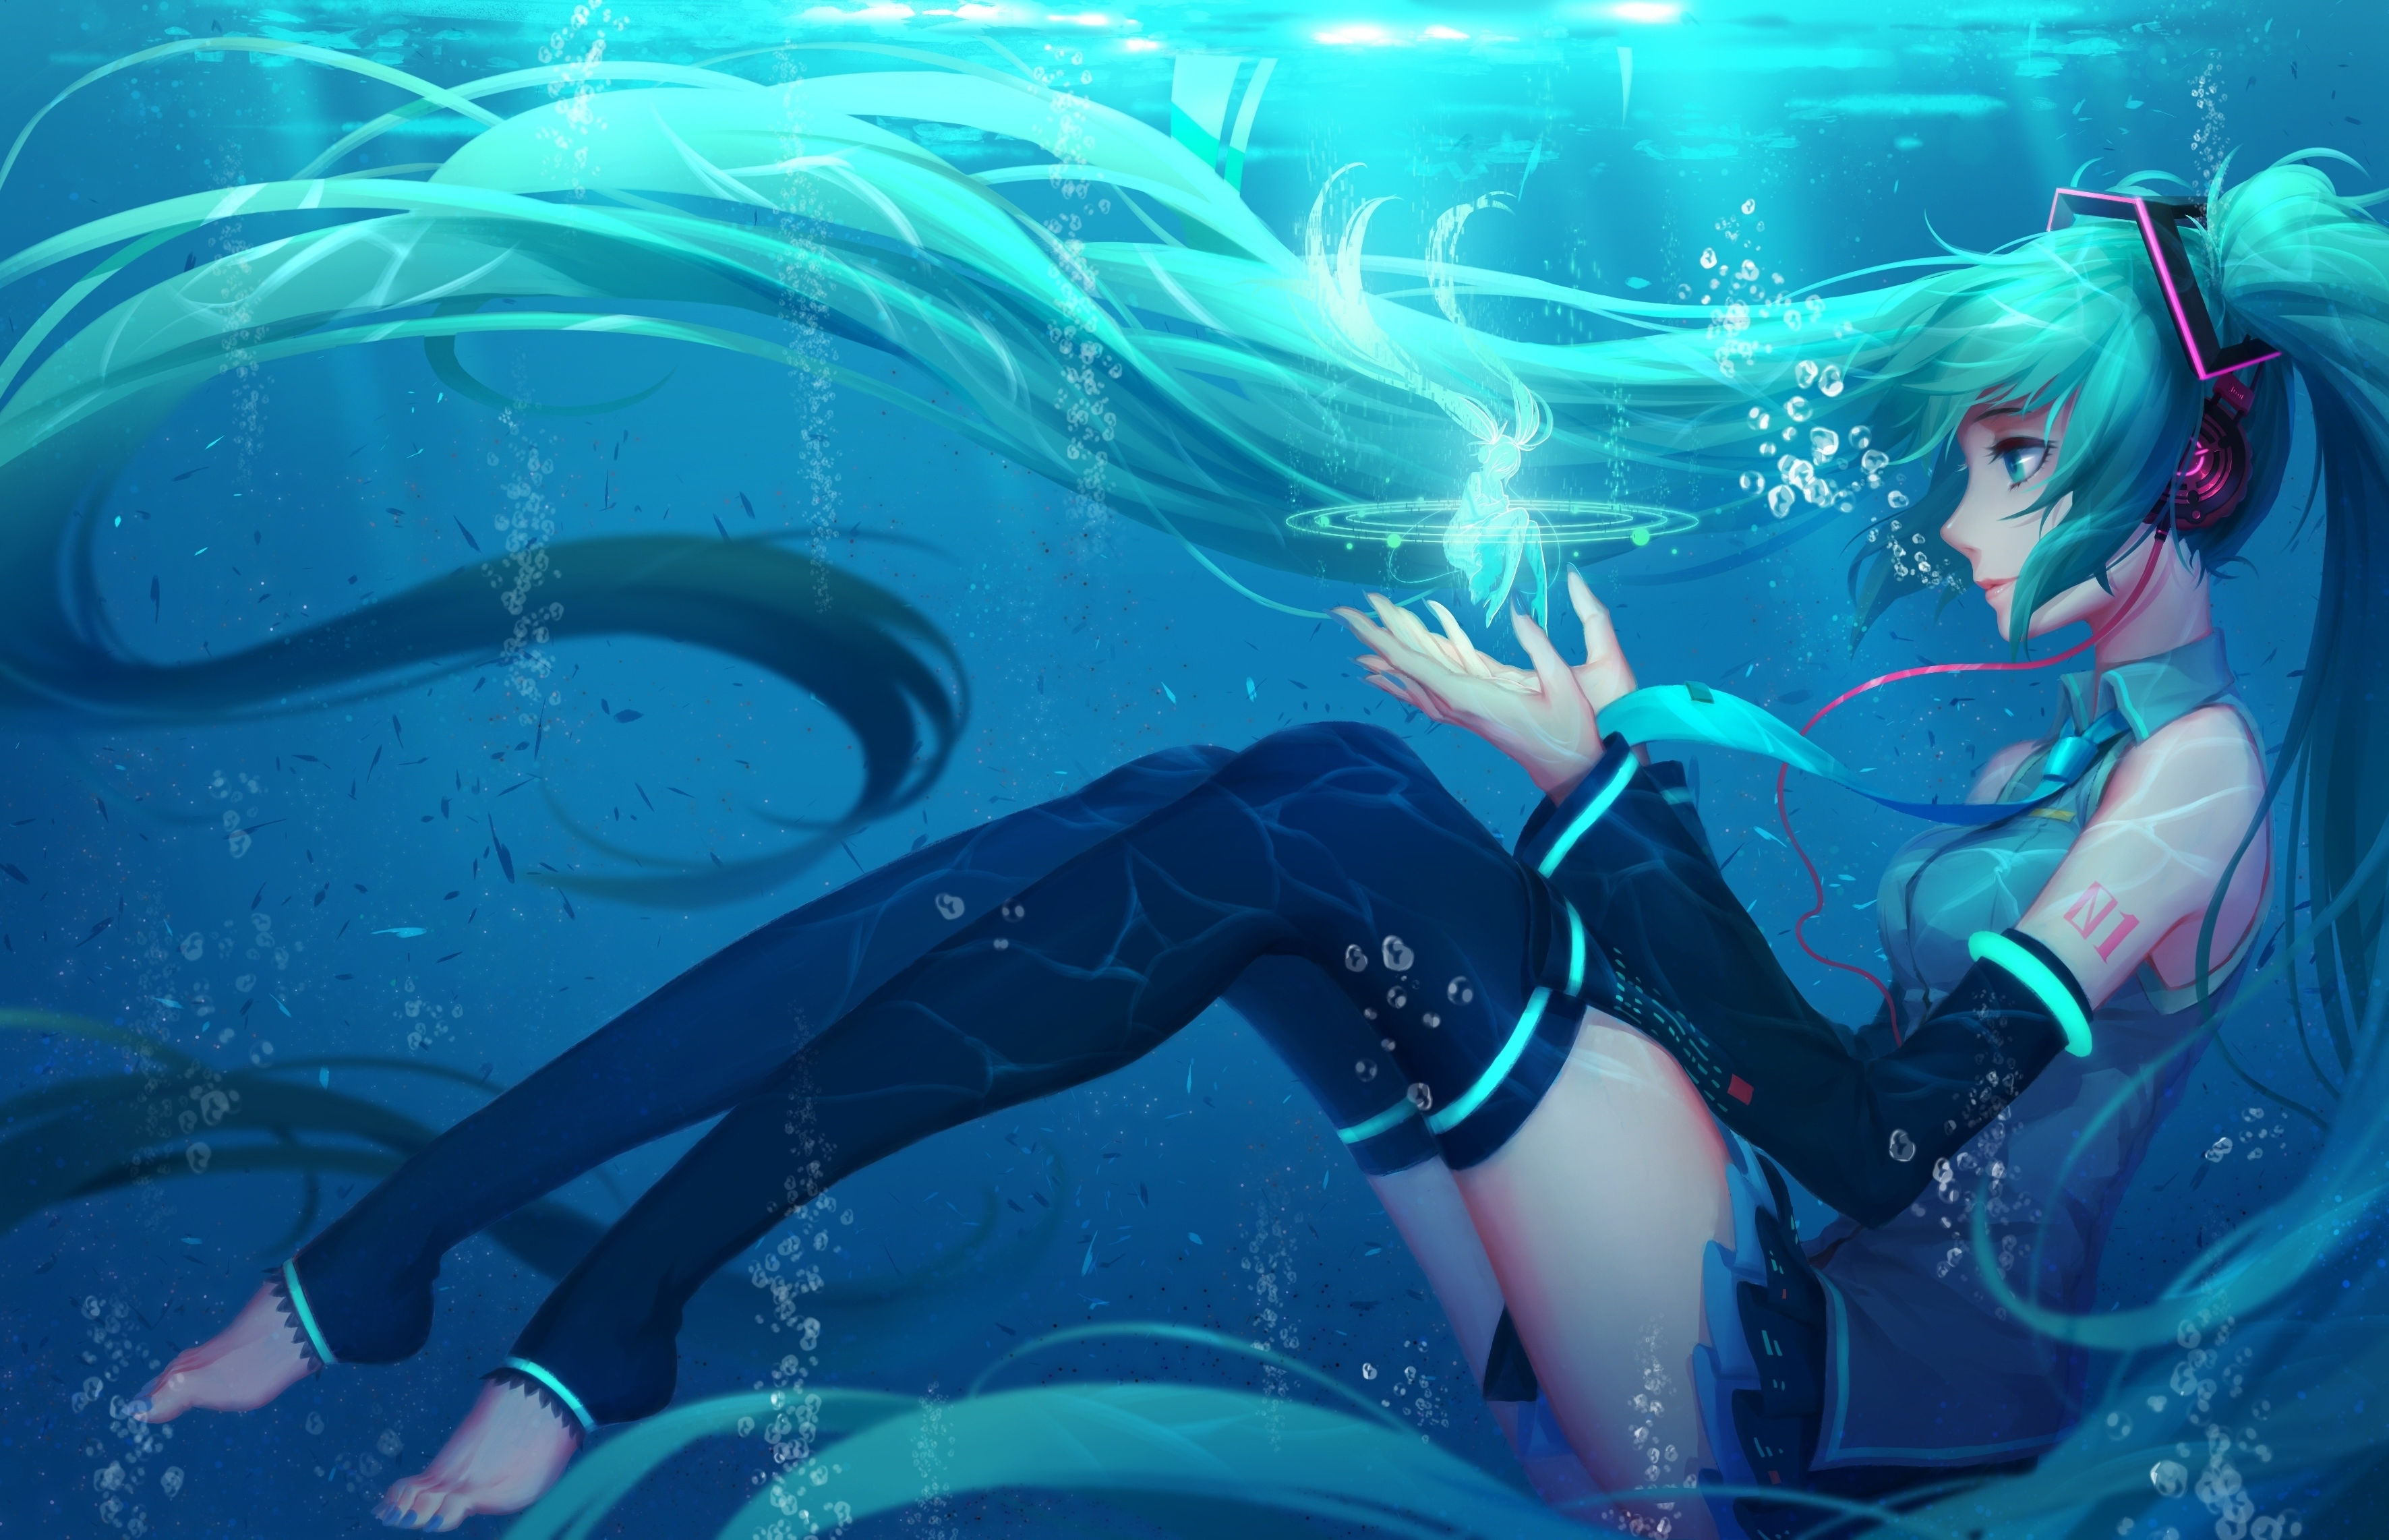 Hatsune miku full hd fondo de pantalla and fondo de for Fondo de pantalla 4k anime